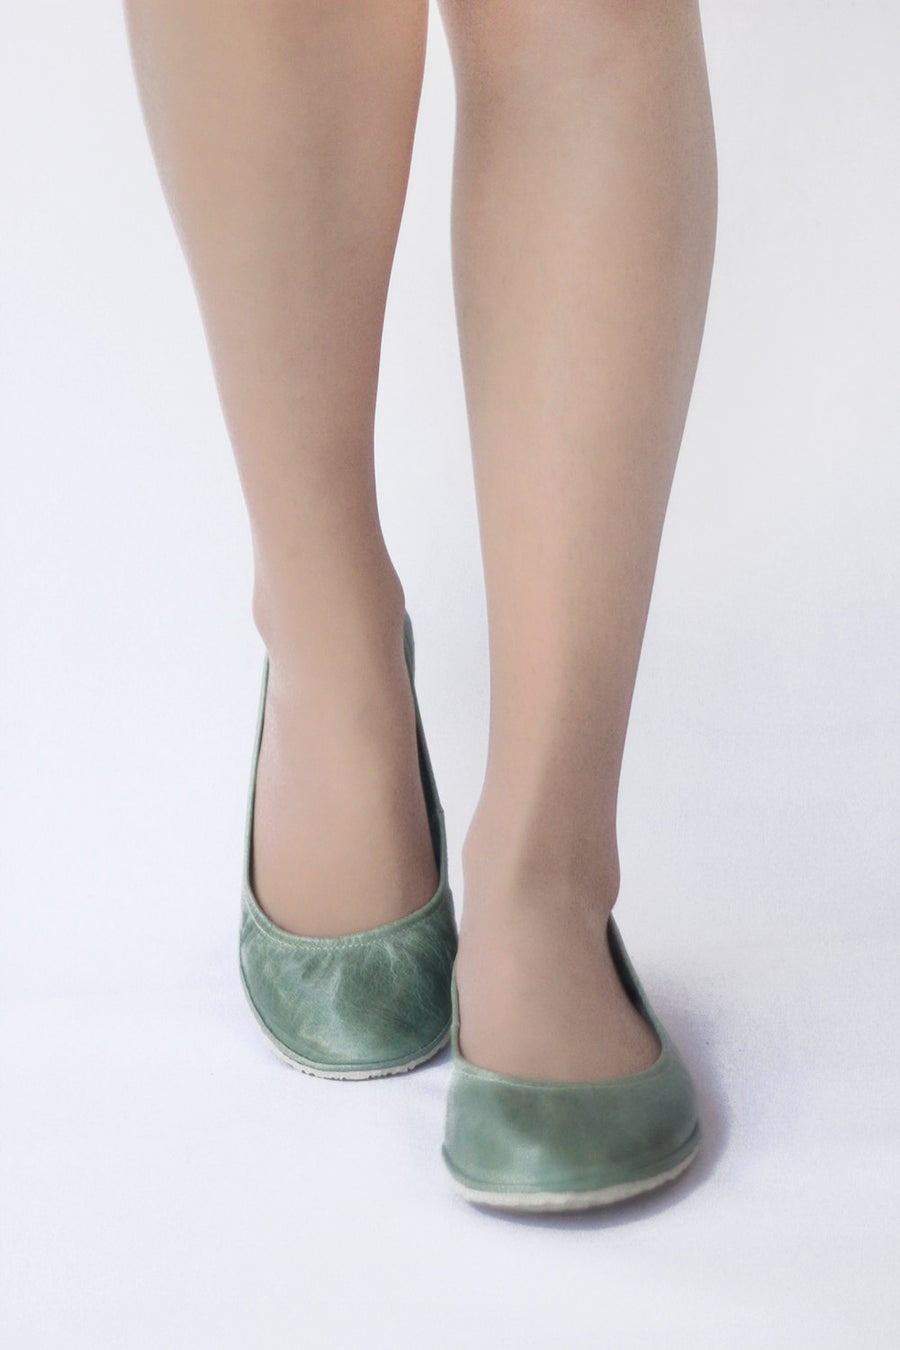 Image of Eko ballet flats in Mint